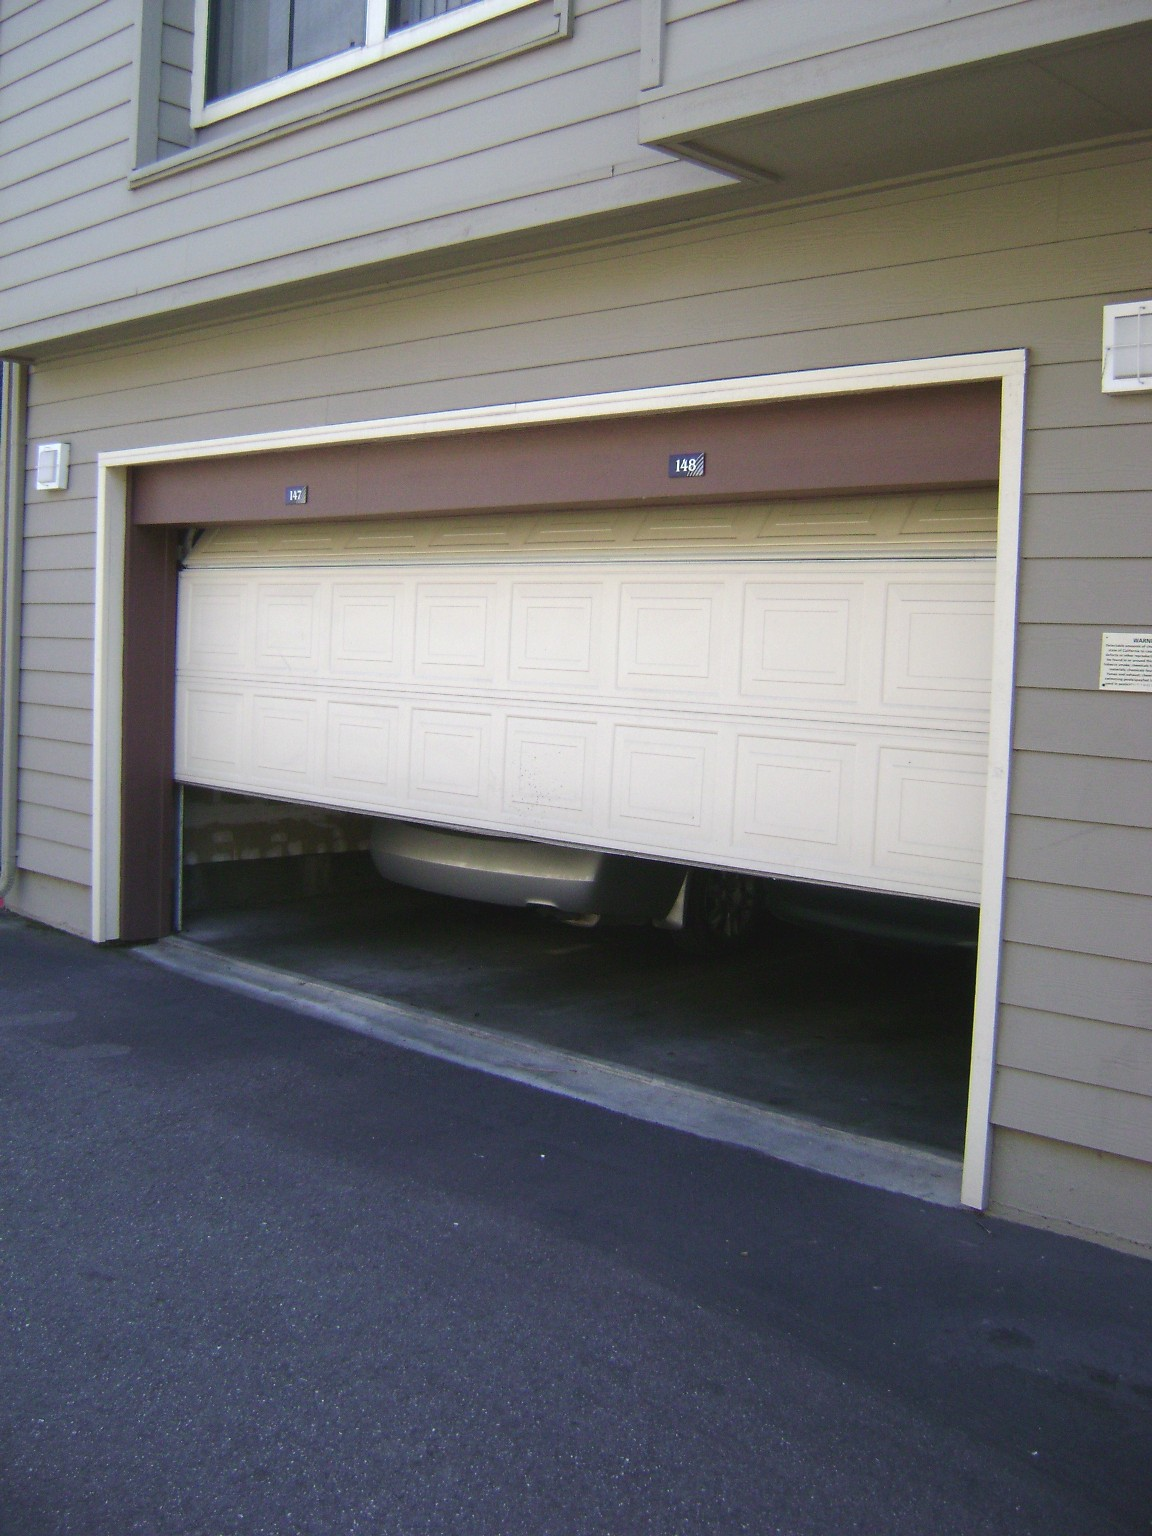 Garage doors sizes available - Garage Doors Sizes Available